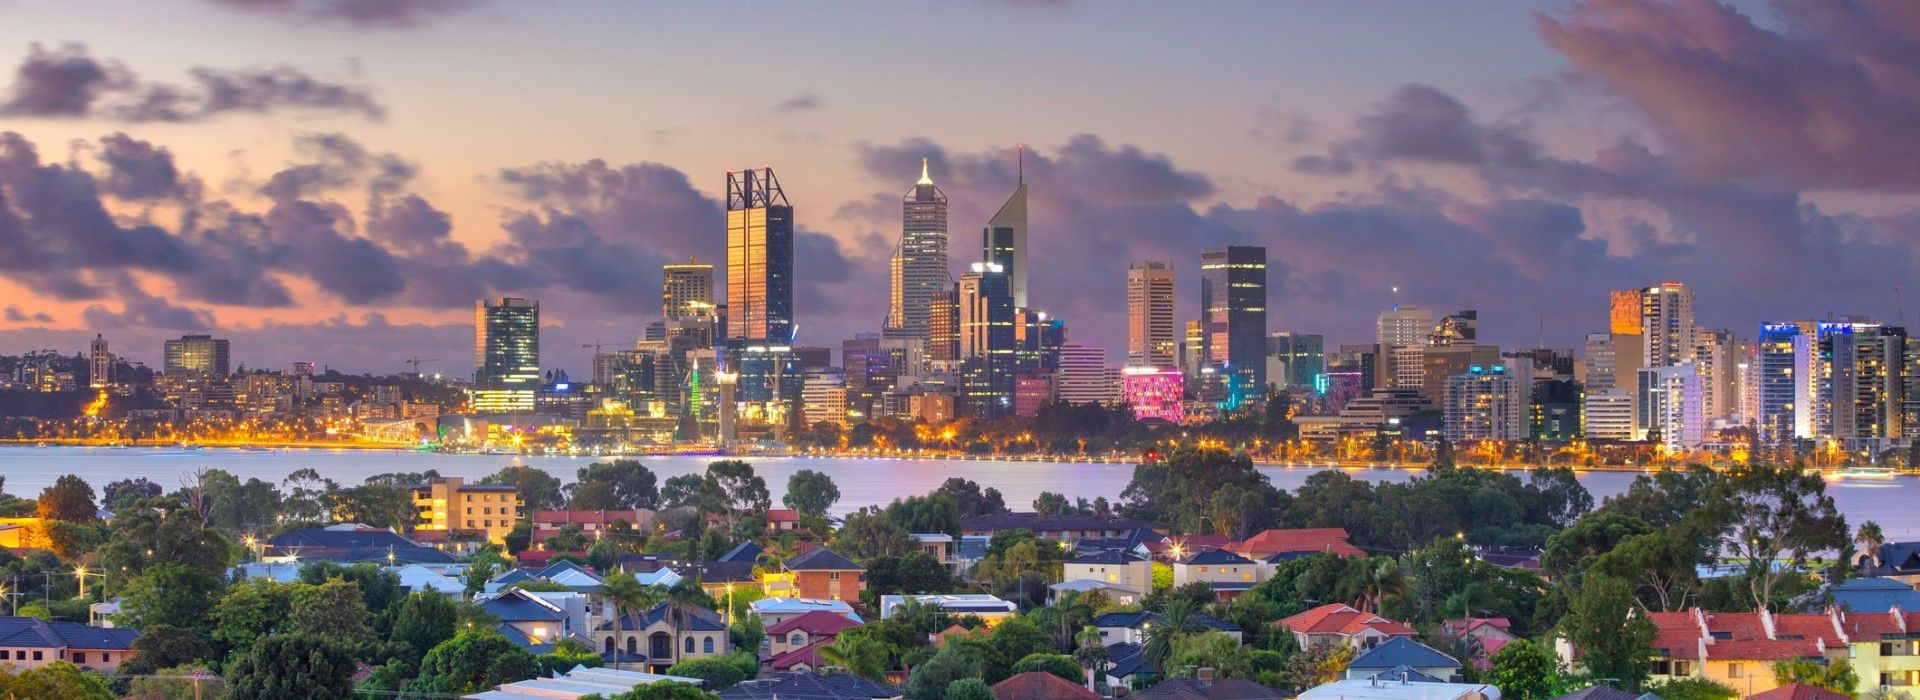 Perth, the capital of Western Australia has a lot of attractions to tour.